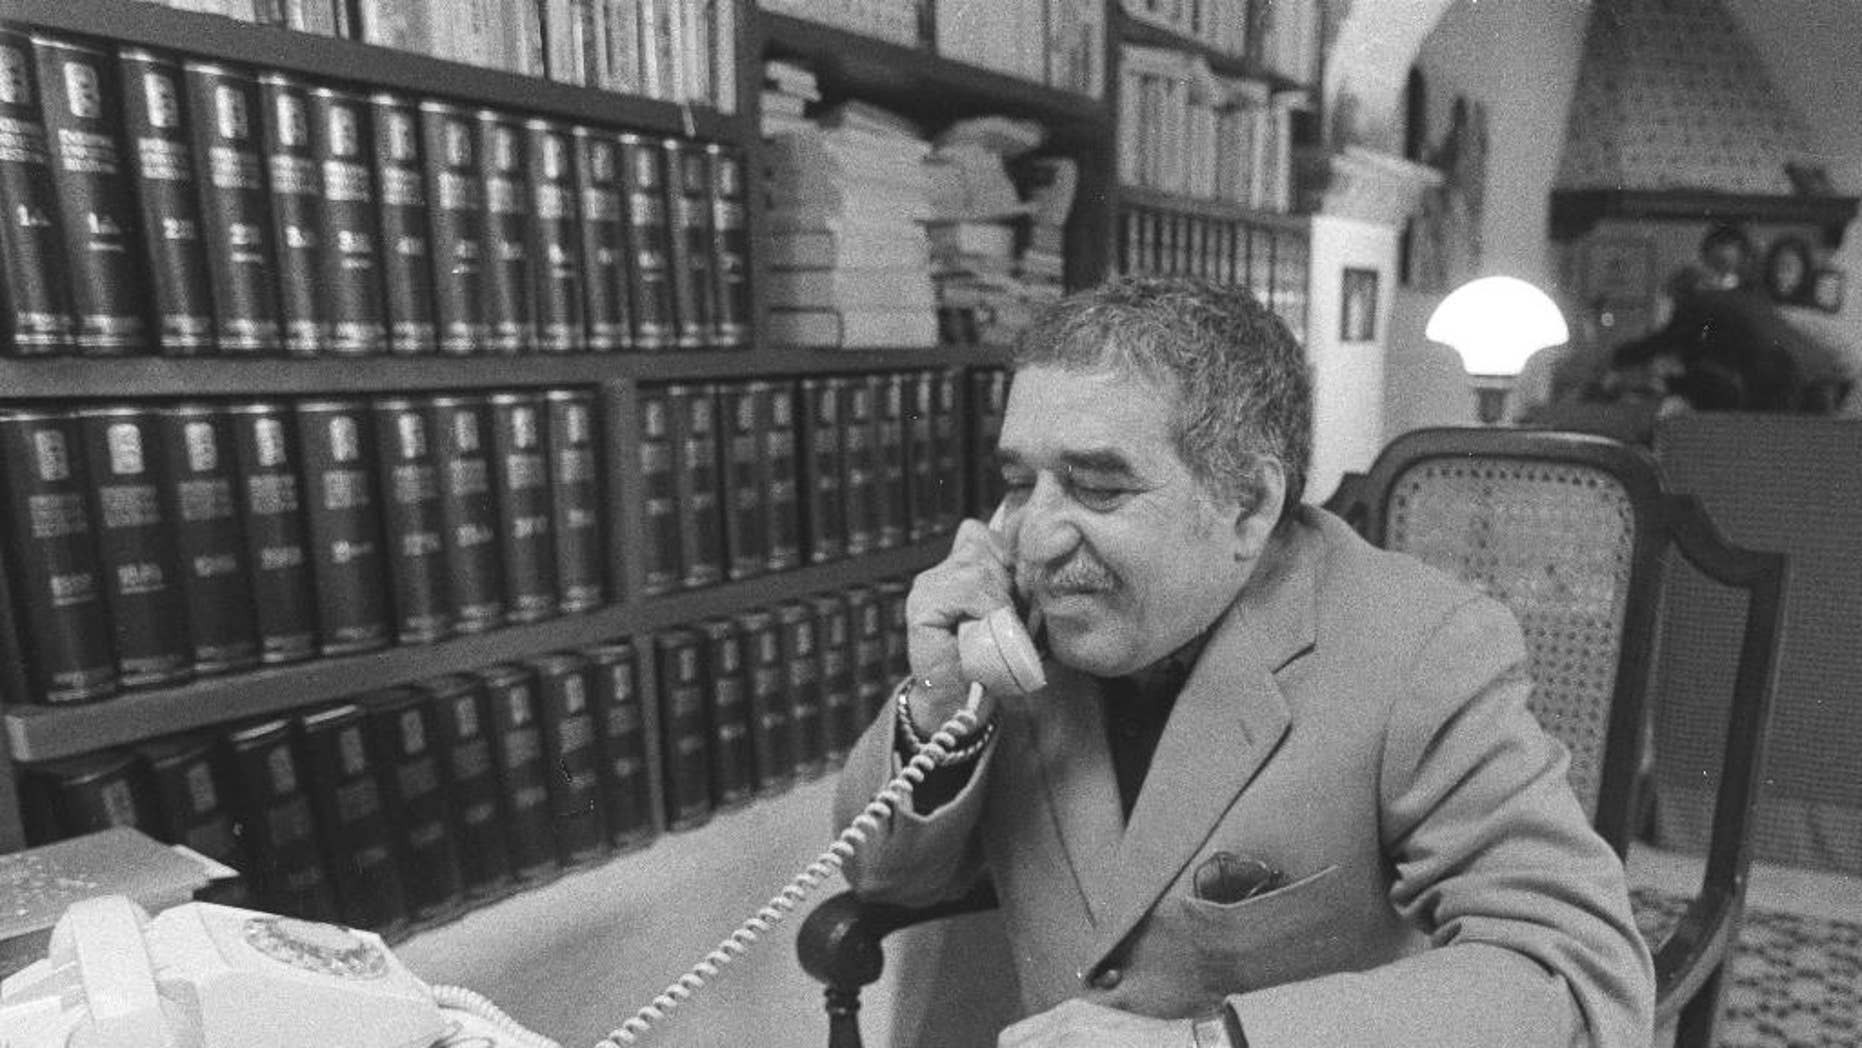 FILE - This undated file photo shows Nobel laureate Gabriel Garcia Marquez at an undisclosed location. The University of Texas' Harry Ransom Center has acquired Marquez's archive. The writer died on April 17, 2014. (AP Photo, File)